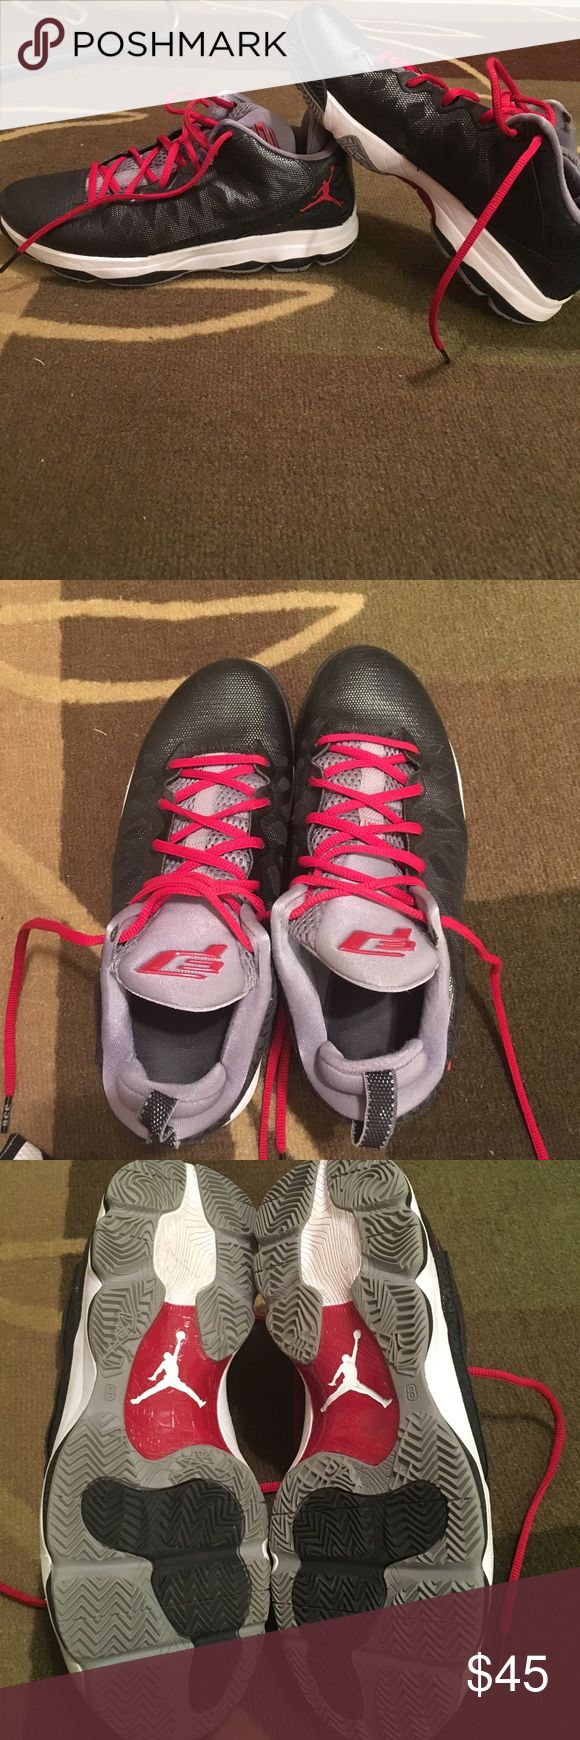 Jordan basketball shoes Men's Jordan CP3 basketball shoes, size 8, fits women size 9. Worn for half a summer league, soles are still in great condition as you can see in picture Jordan Shoes Athletic Shoes